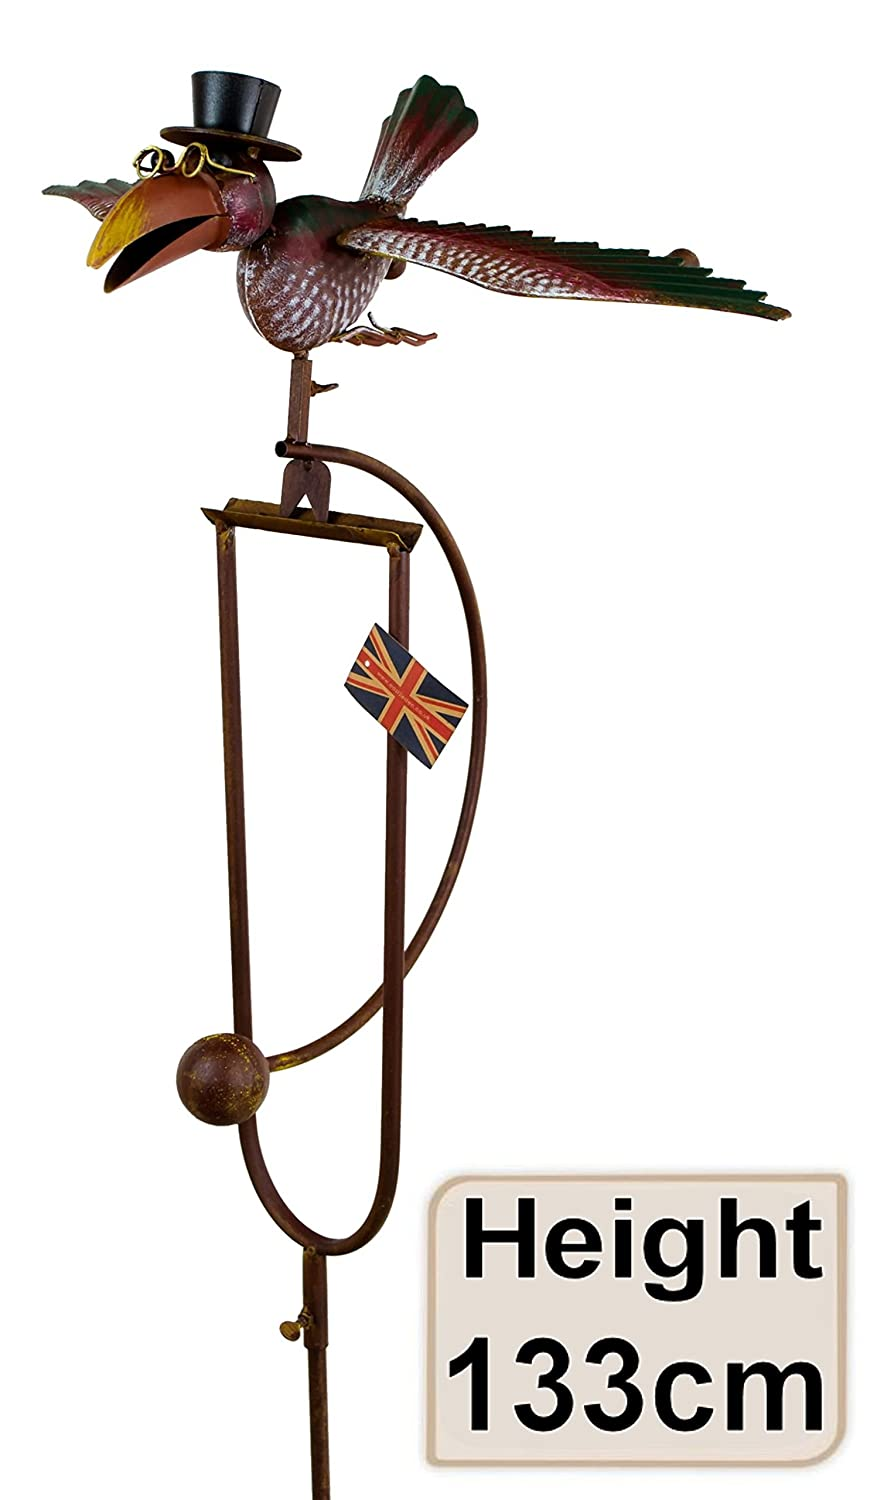 east2eden Rocking Balancing Flying Owl or Crow Metal Garden Wind Rocker Spinner Ornament (Colourful Dad) e2e